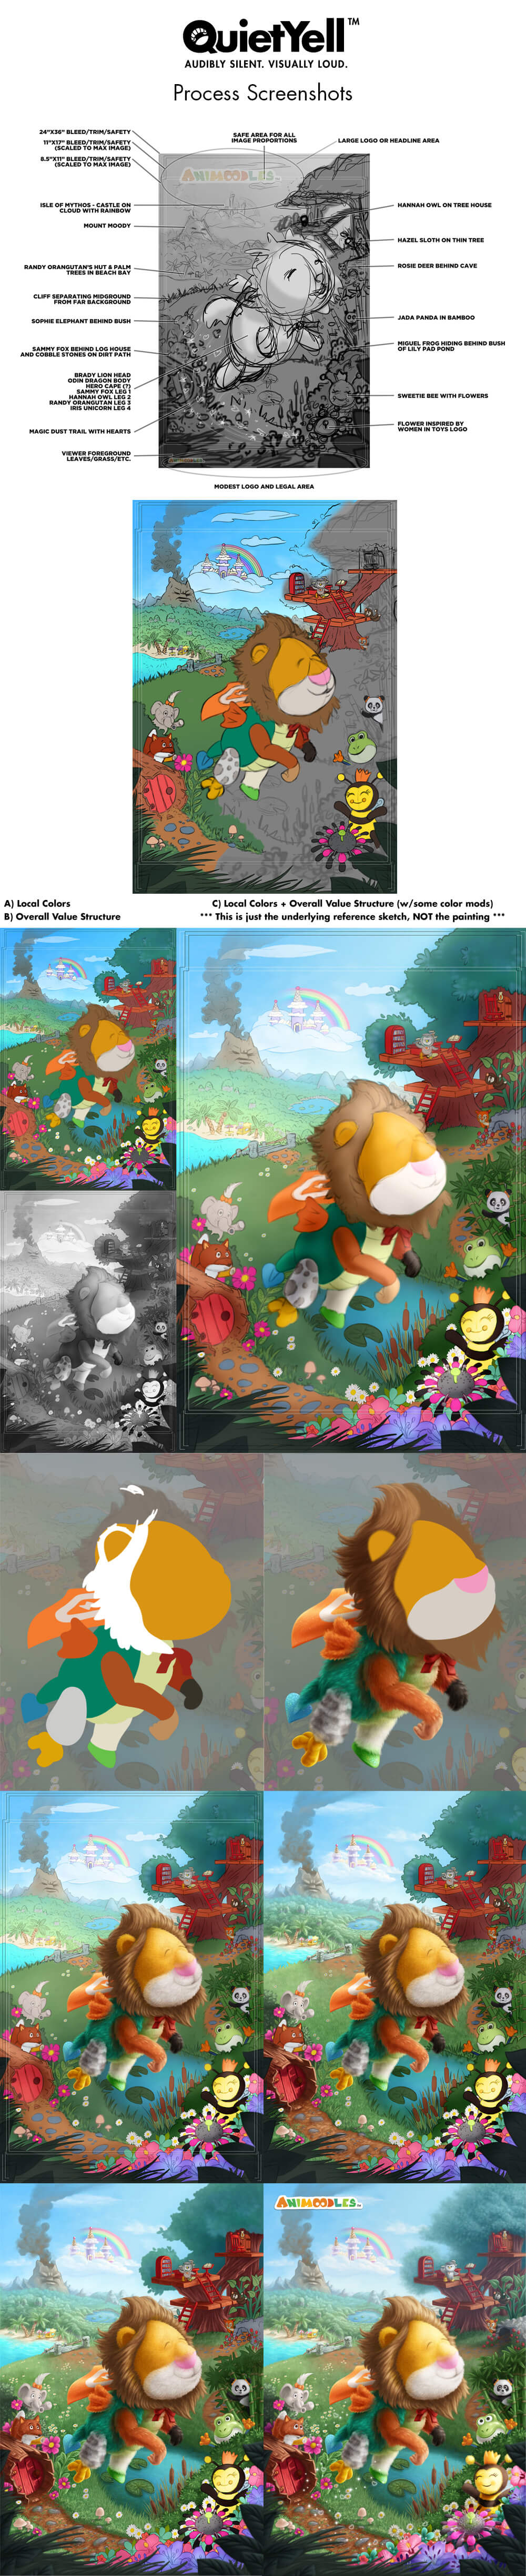 QuietYell / Scott Monaco's illustration process screenshots for Animoodles Celebration Poster (Animoodles are interchangeable plush toys by Marissa Louie)